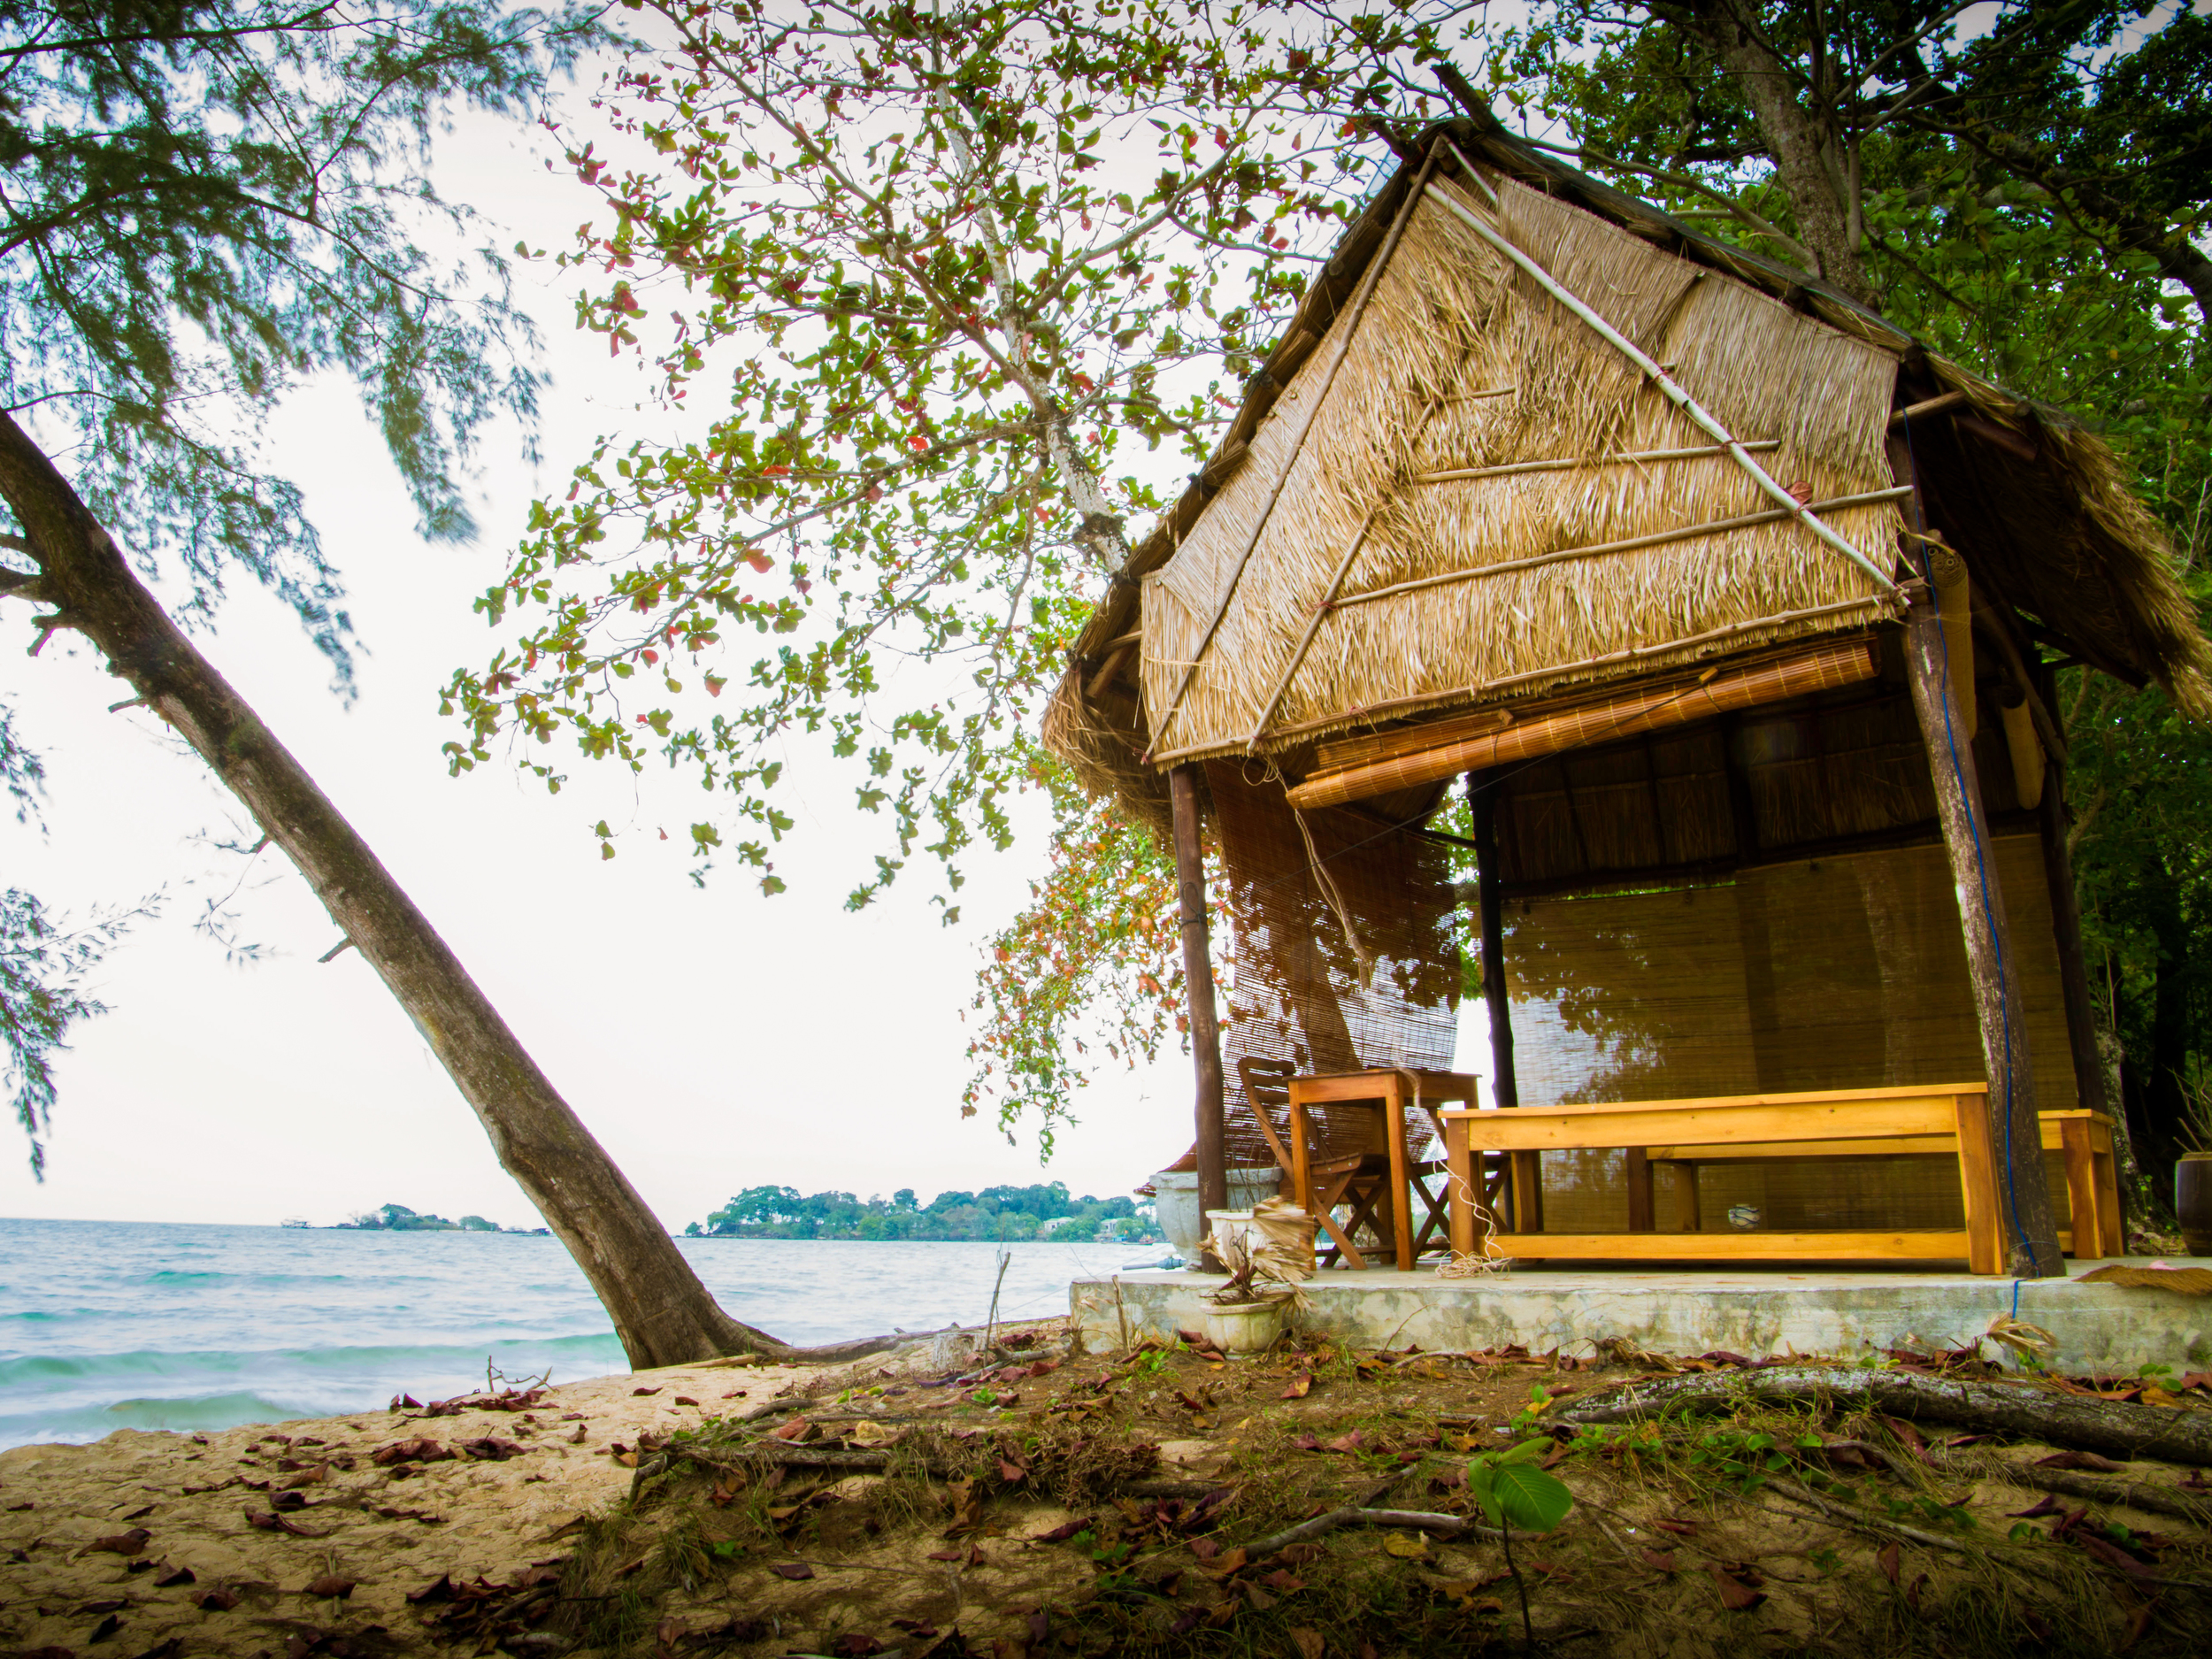 phuo-quoc-bamboo-cottage-33.jpg